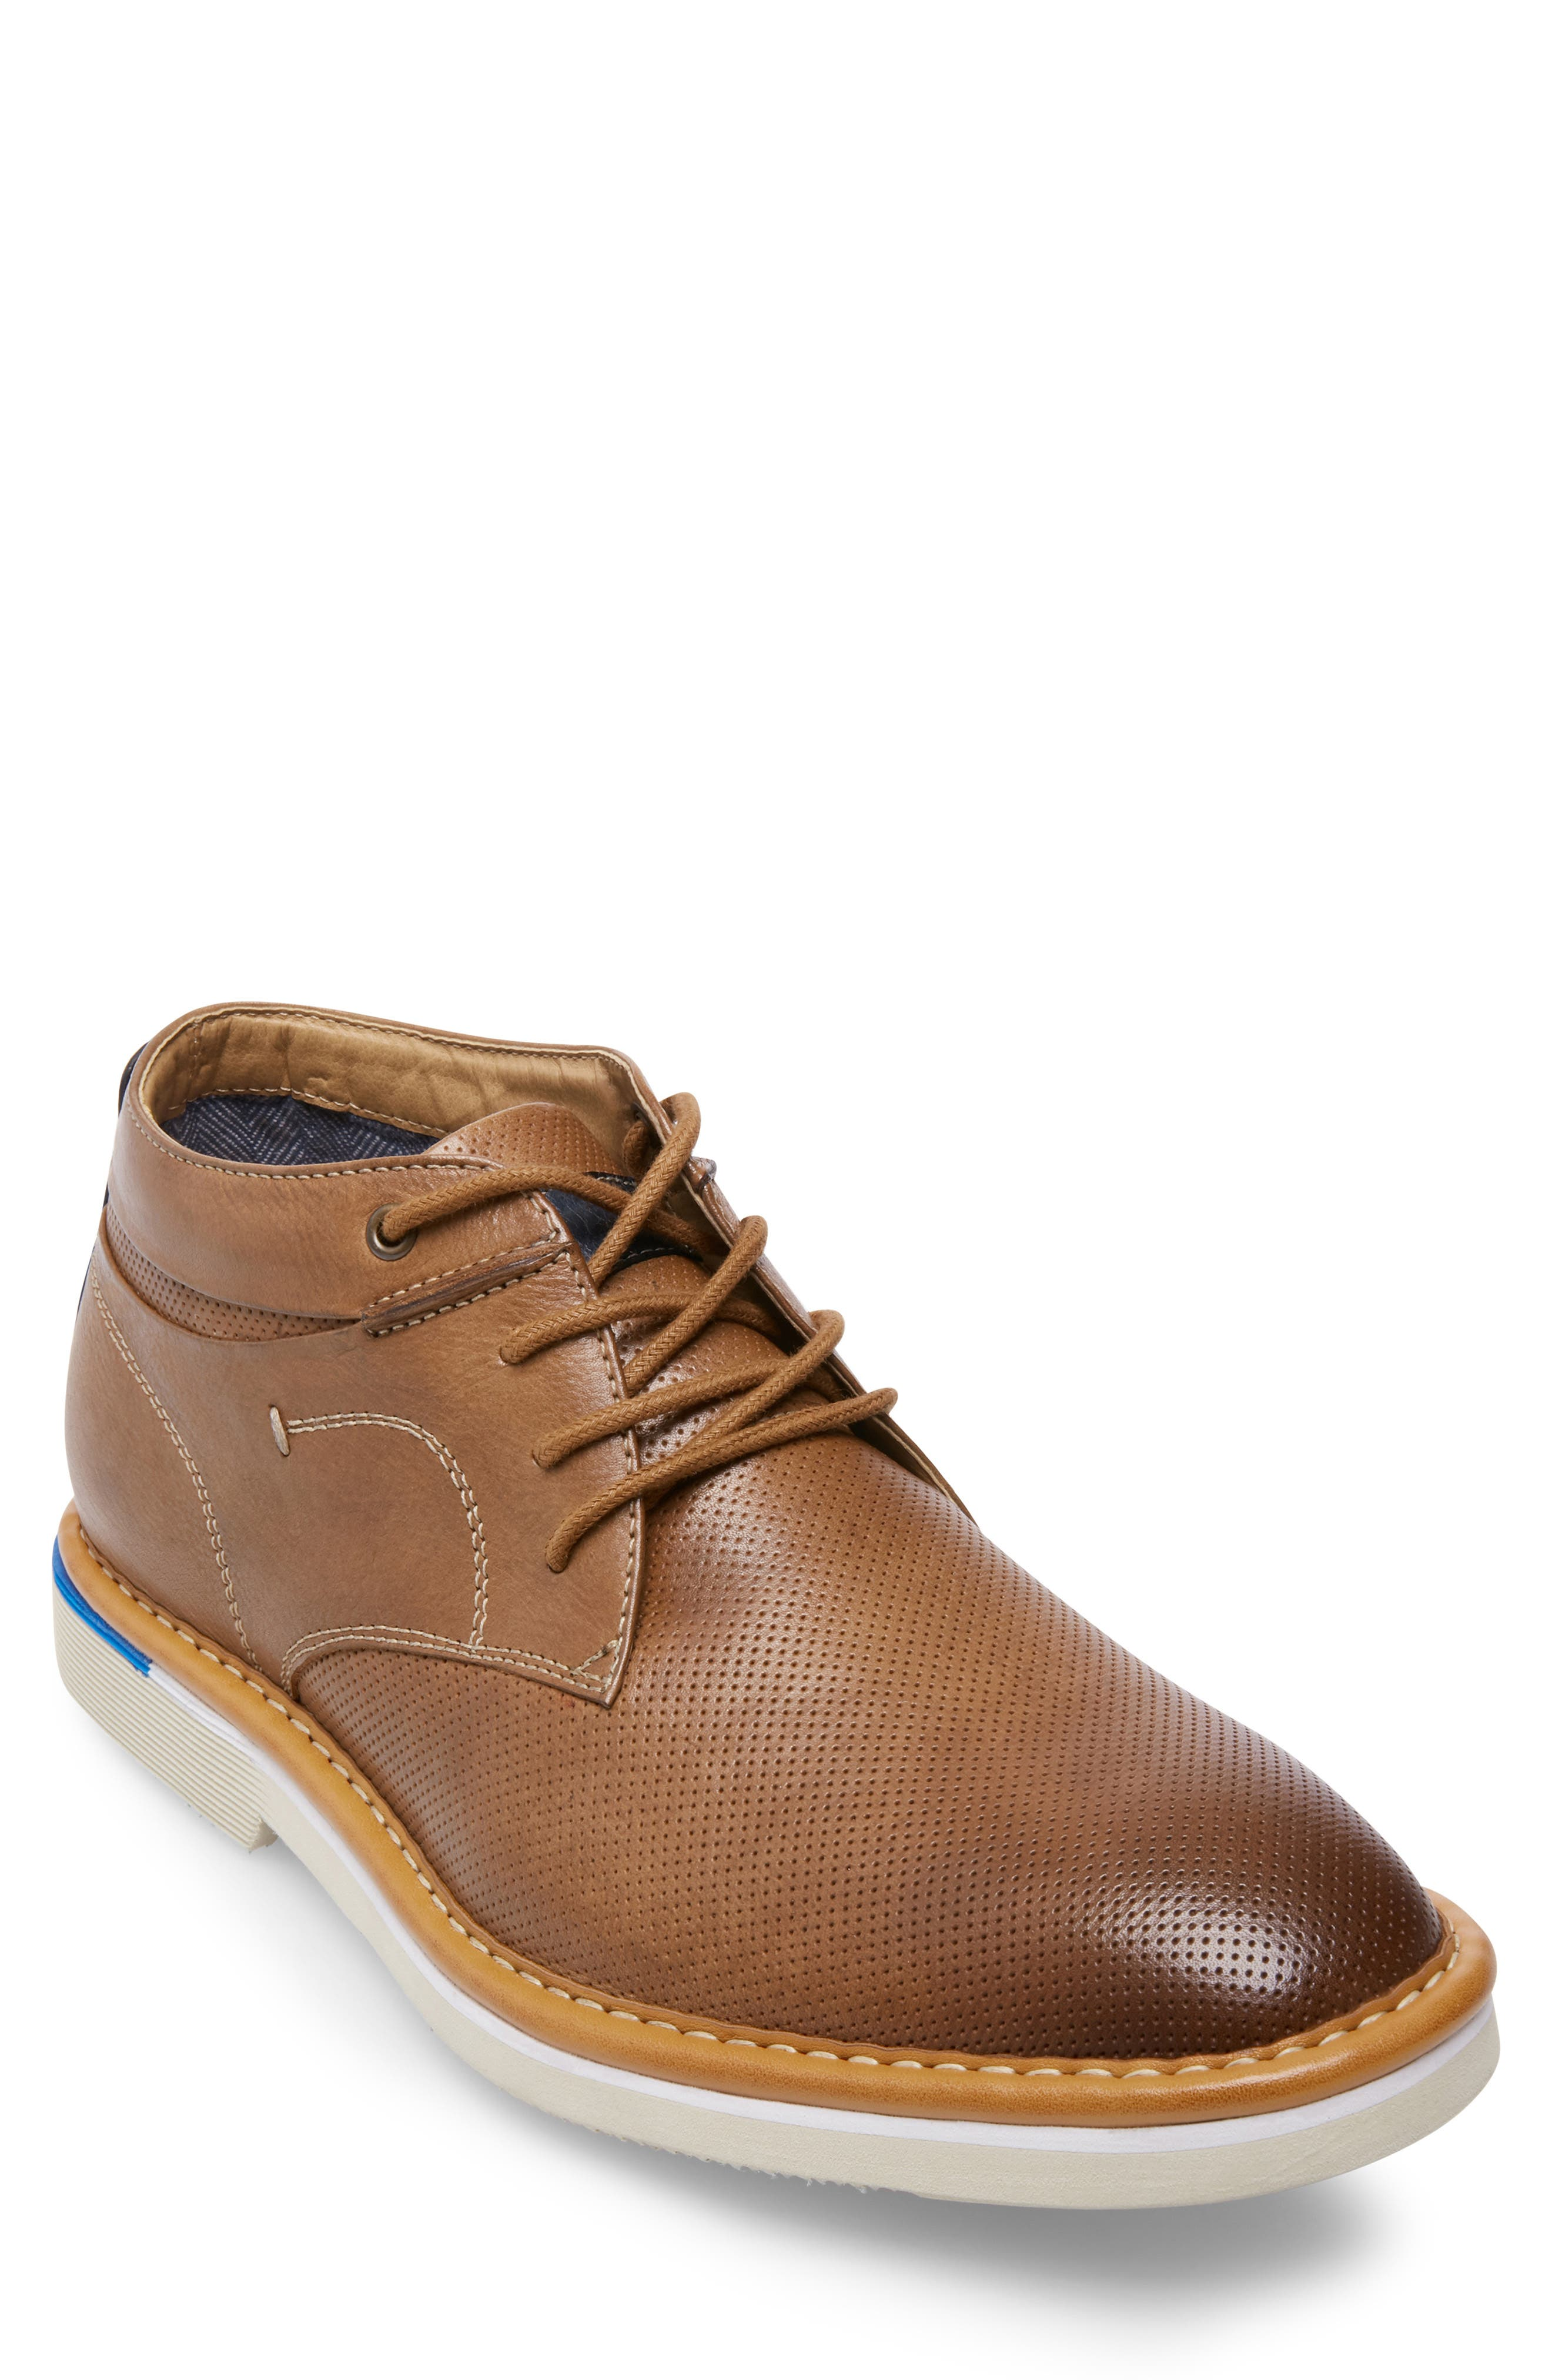 Steve Madden Dazier Chukka Boot- Brown